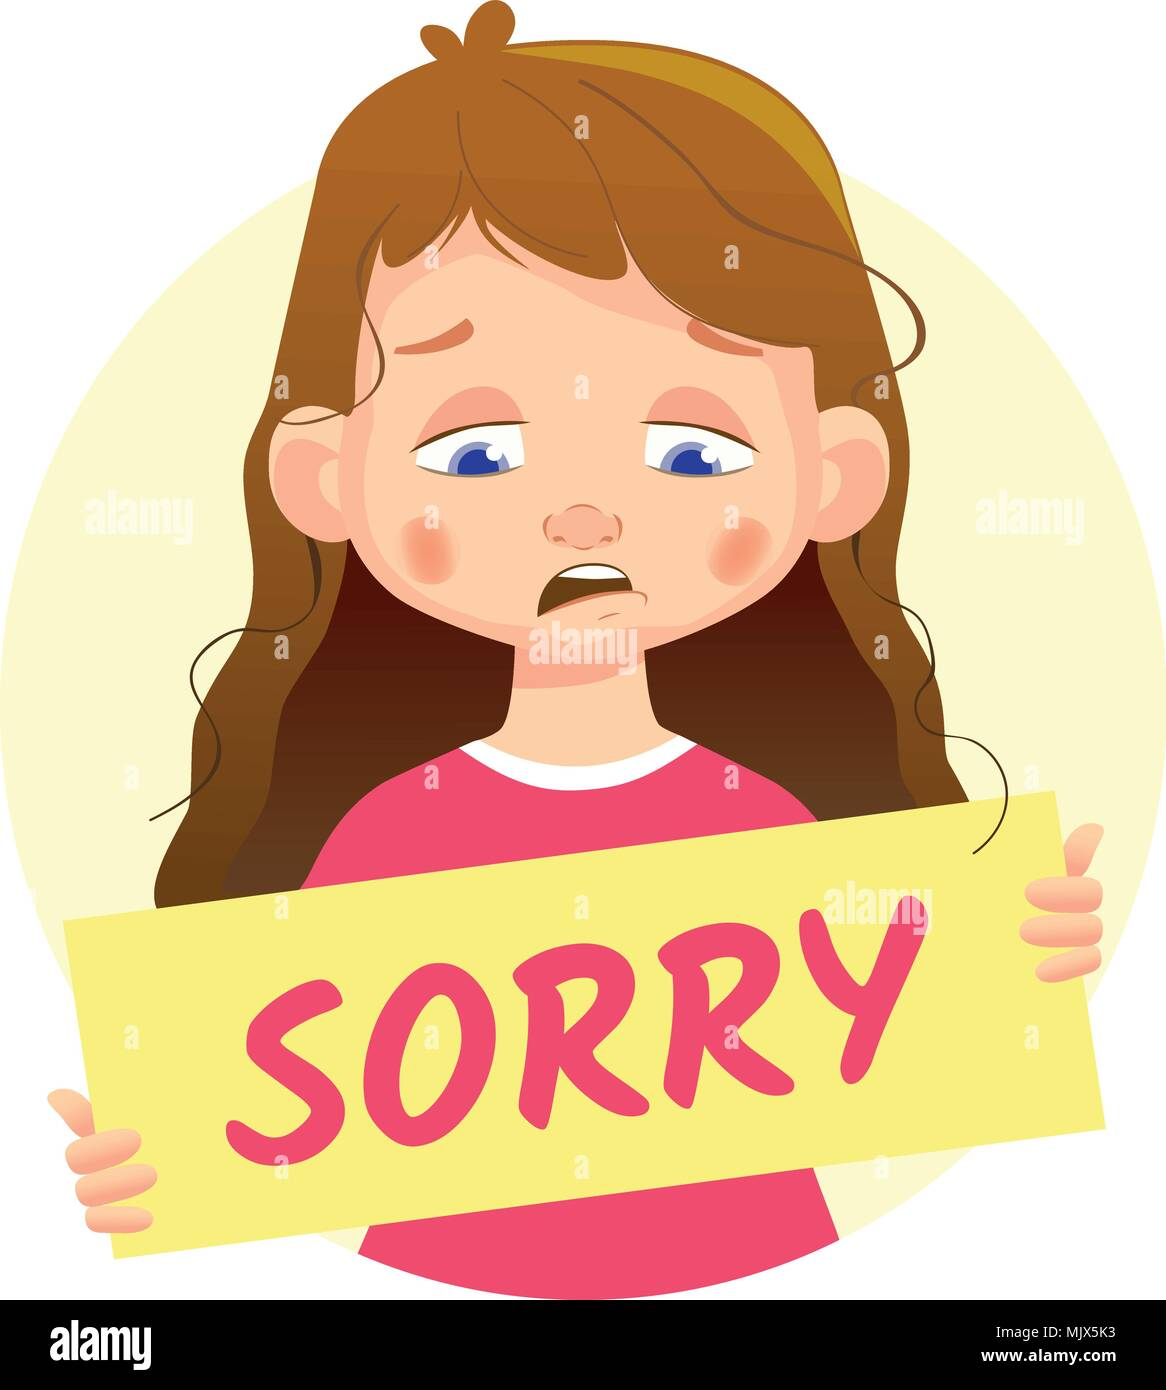 Sad Sorry Images: Sad Girl Stock Vector Images